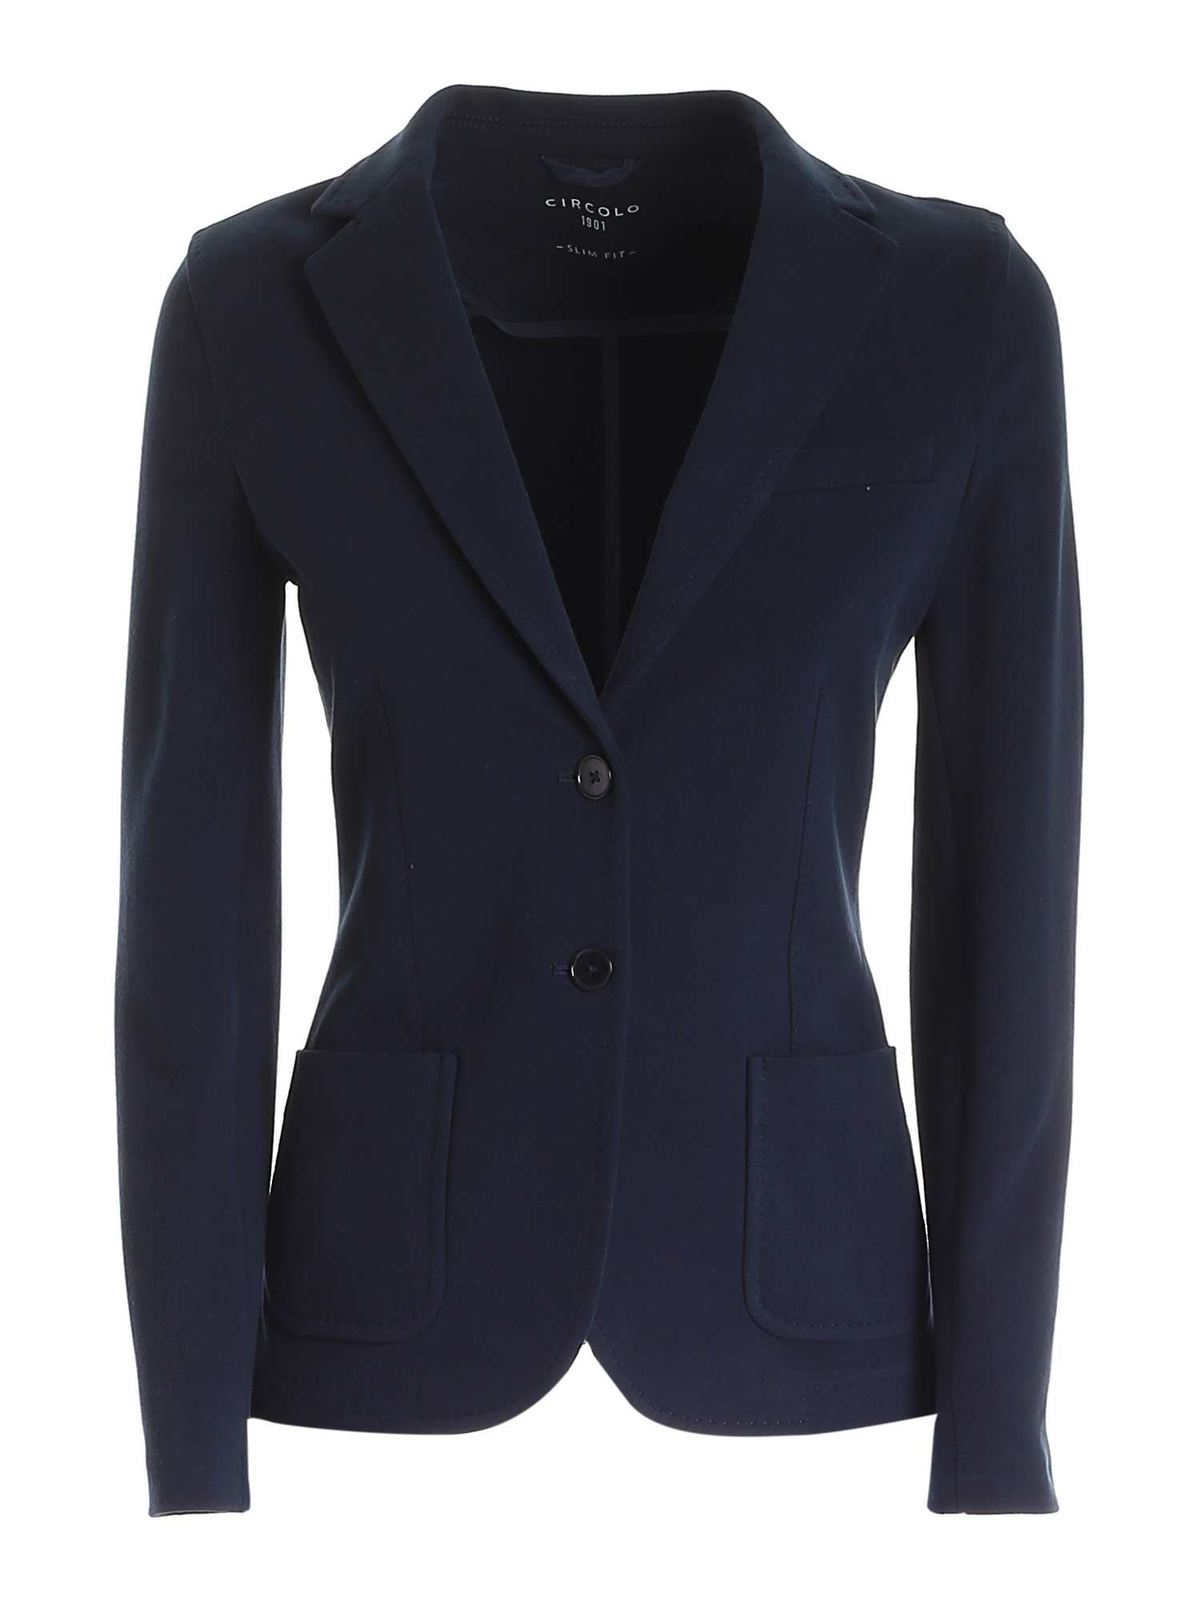 Circolo 1901 Cottons SINGLE-BREASTED JACKET IN BLUE